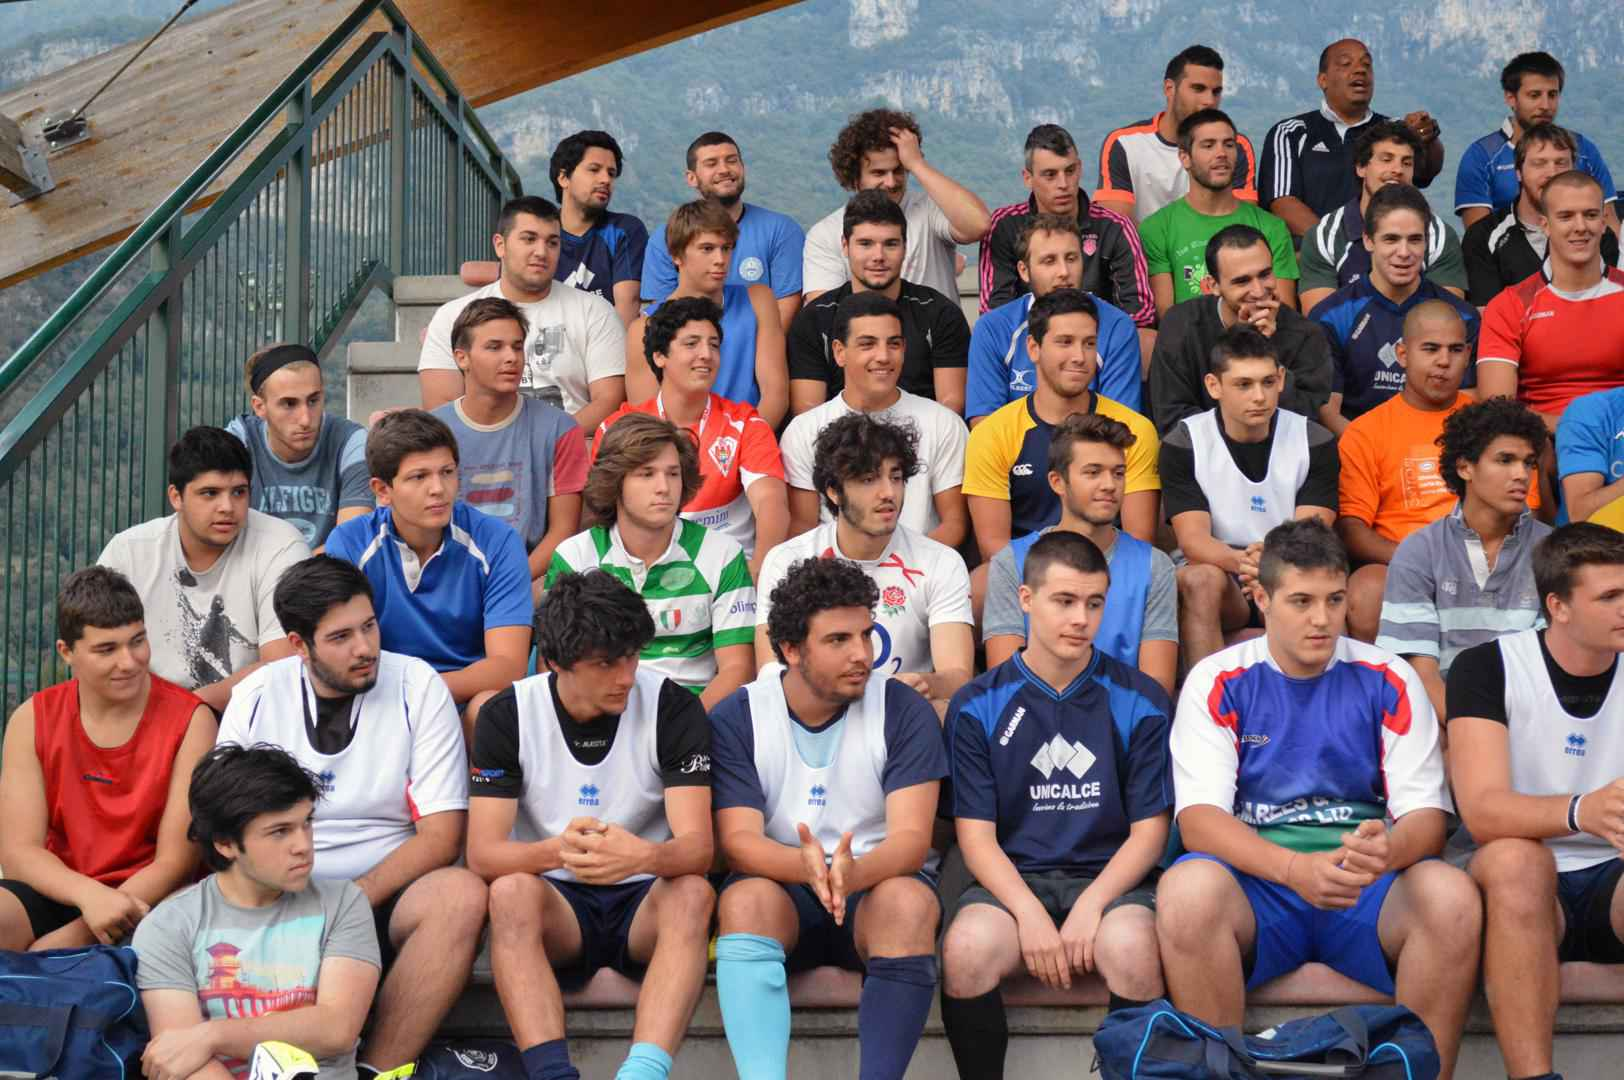 rugby lecco 2014 2015 (7)